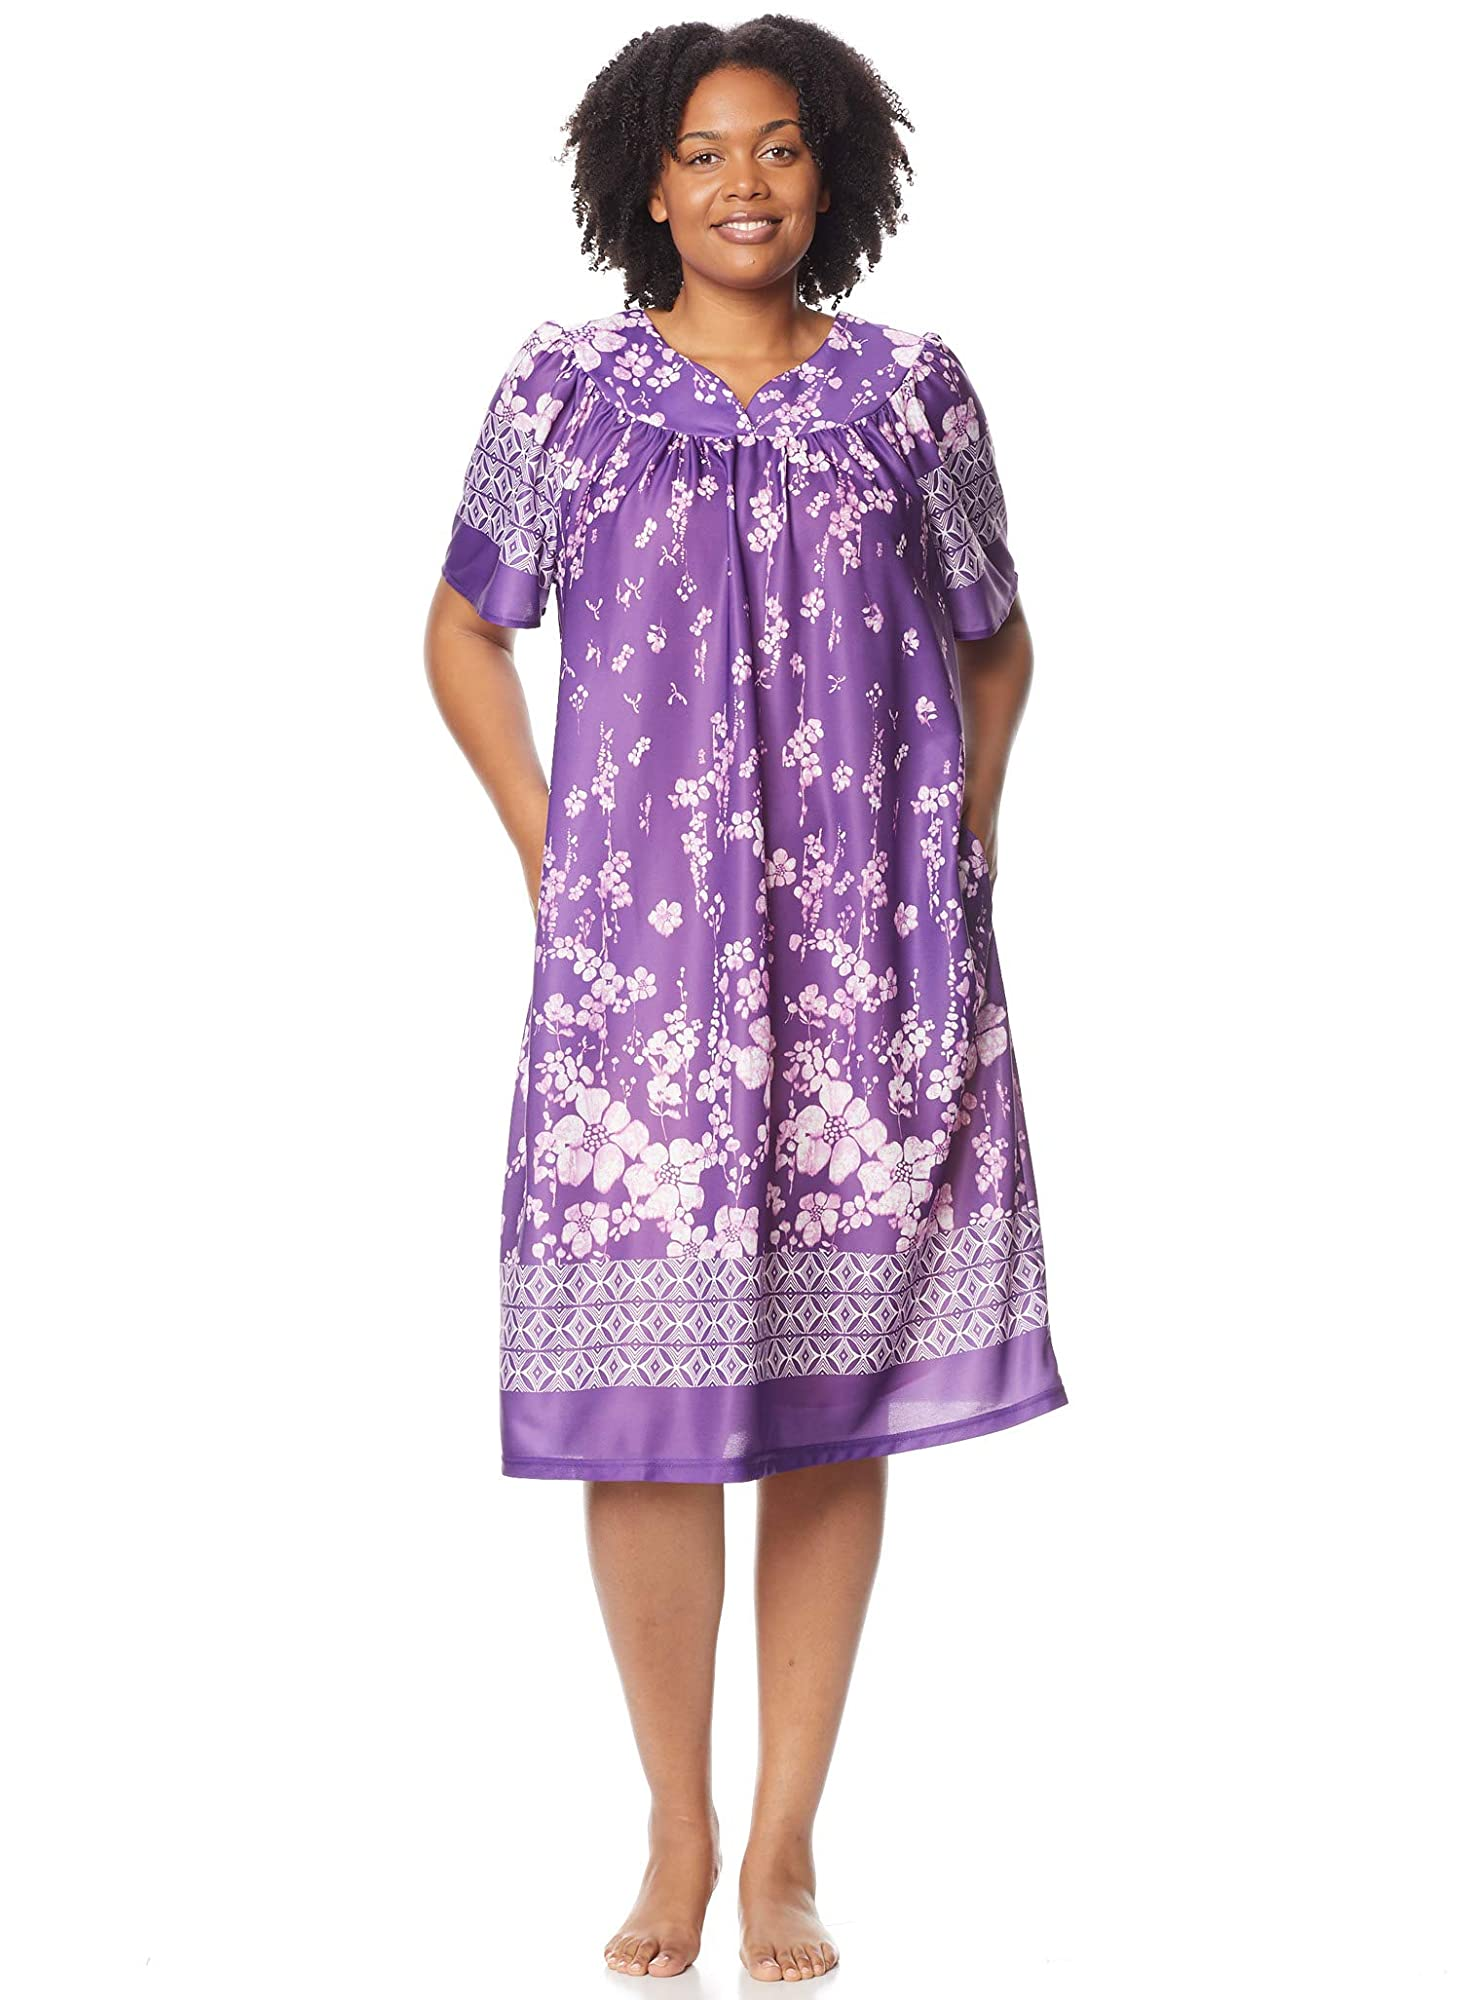 Lounger House Dress With Pockets For Women Nightgown